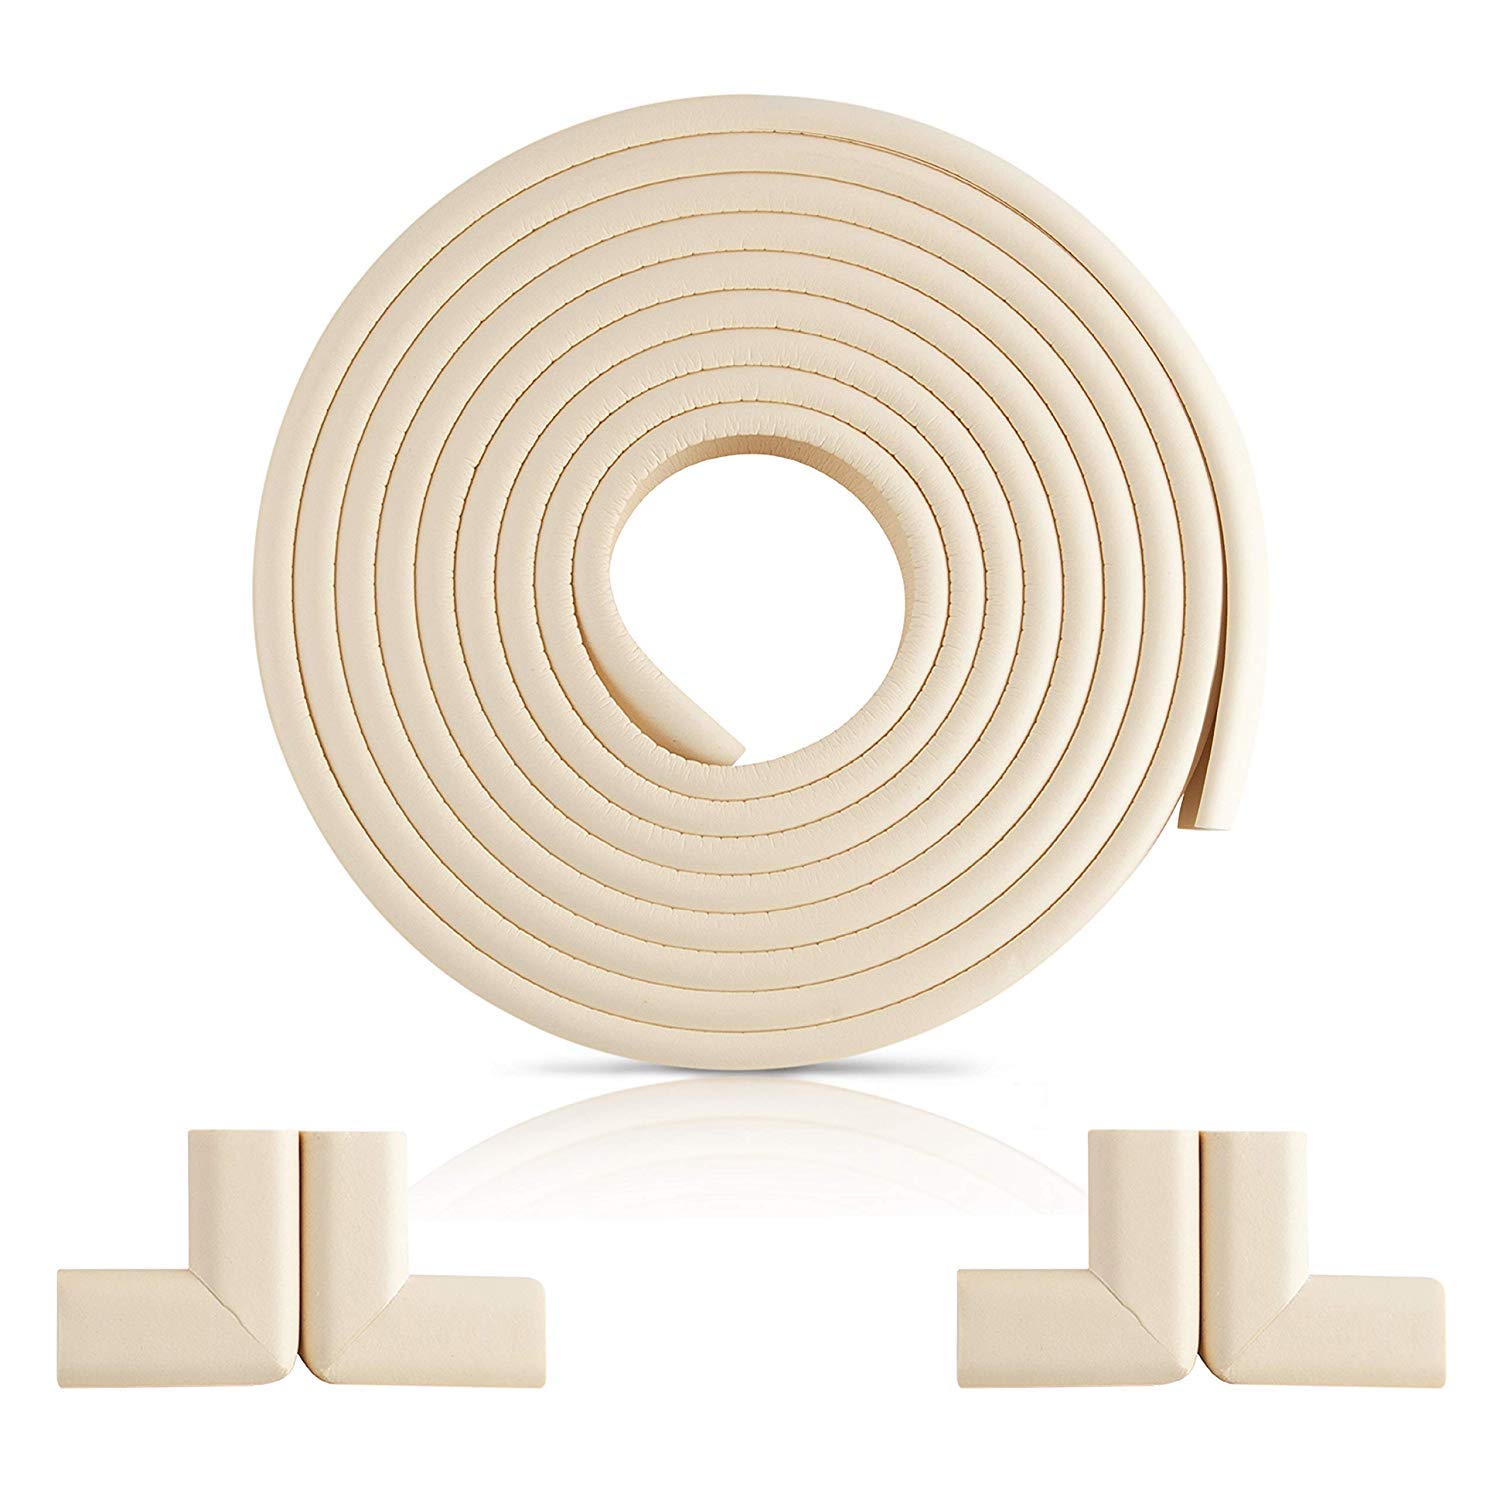 NEW Furniture Edge and Corner Guards | 16.2ft Protective Foam Cushion | 15ft Bumper 4 Adhesive Childsafe Corners | Baby Child Proofing Foam Set and Safe for Table, Fireplace, Countertop | White